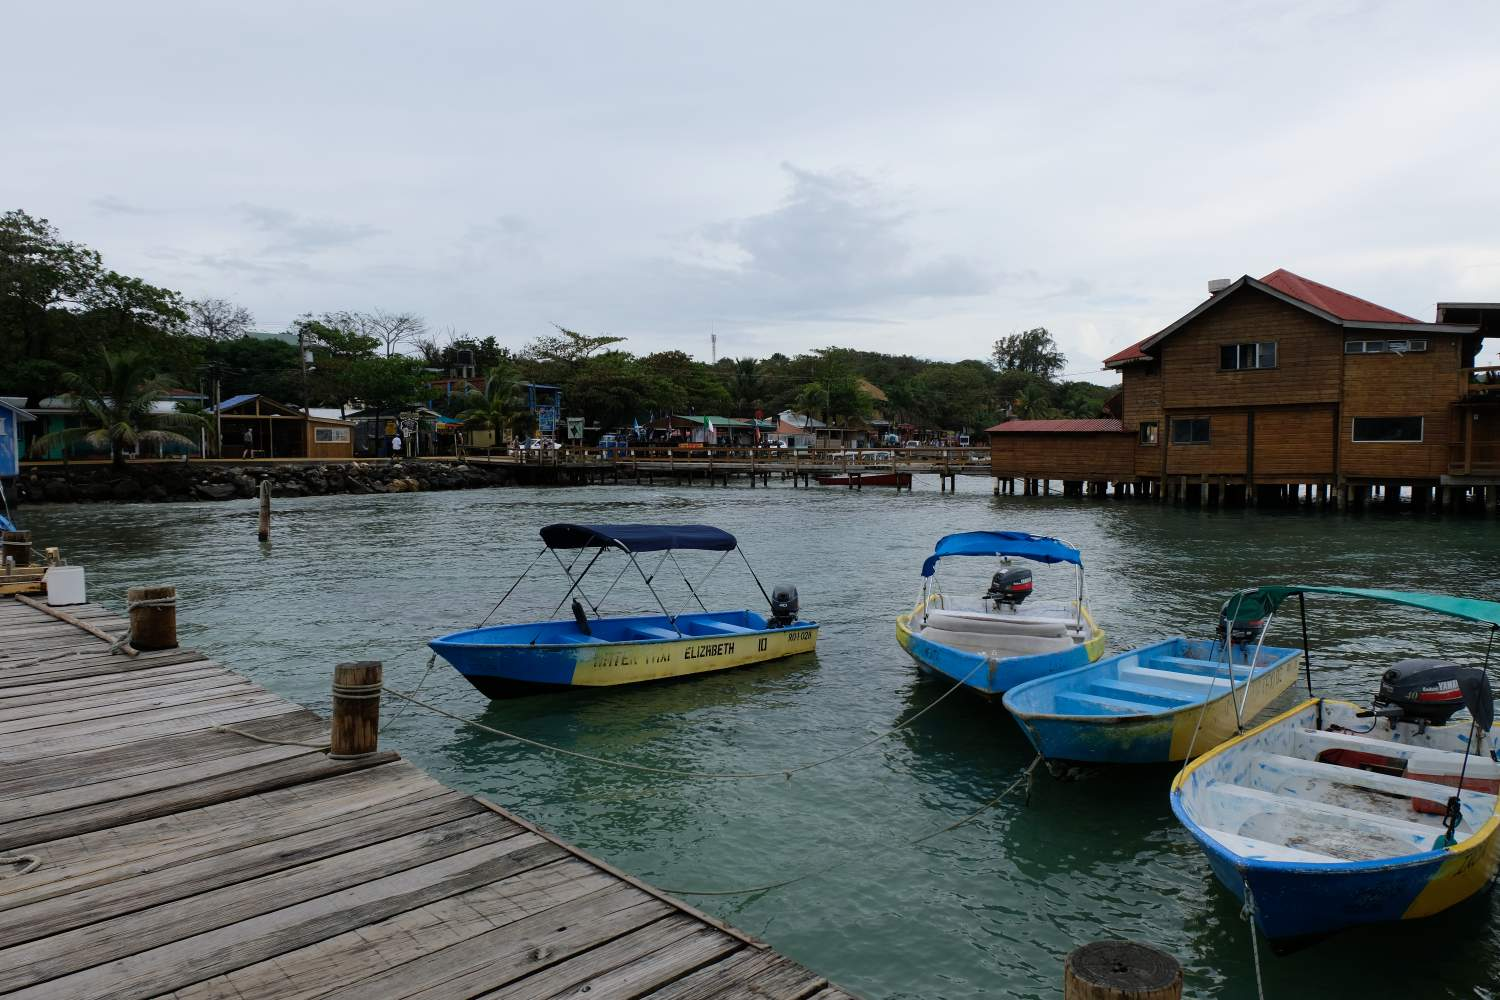 West-end village on Roatan Island, Honduras